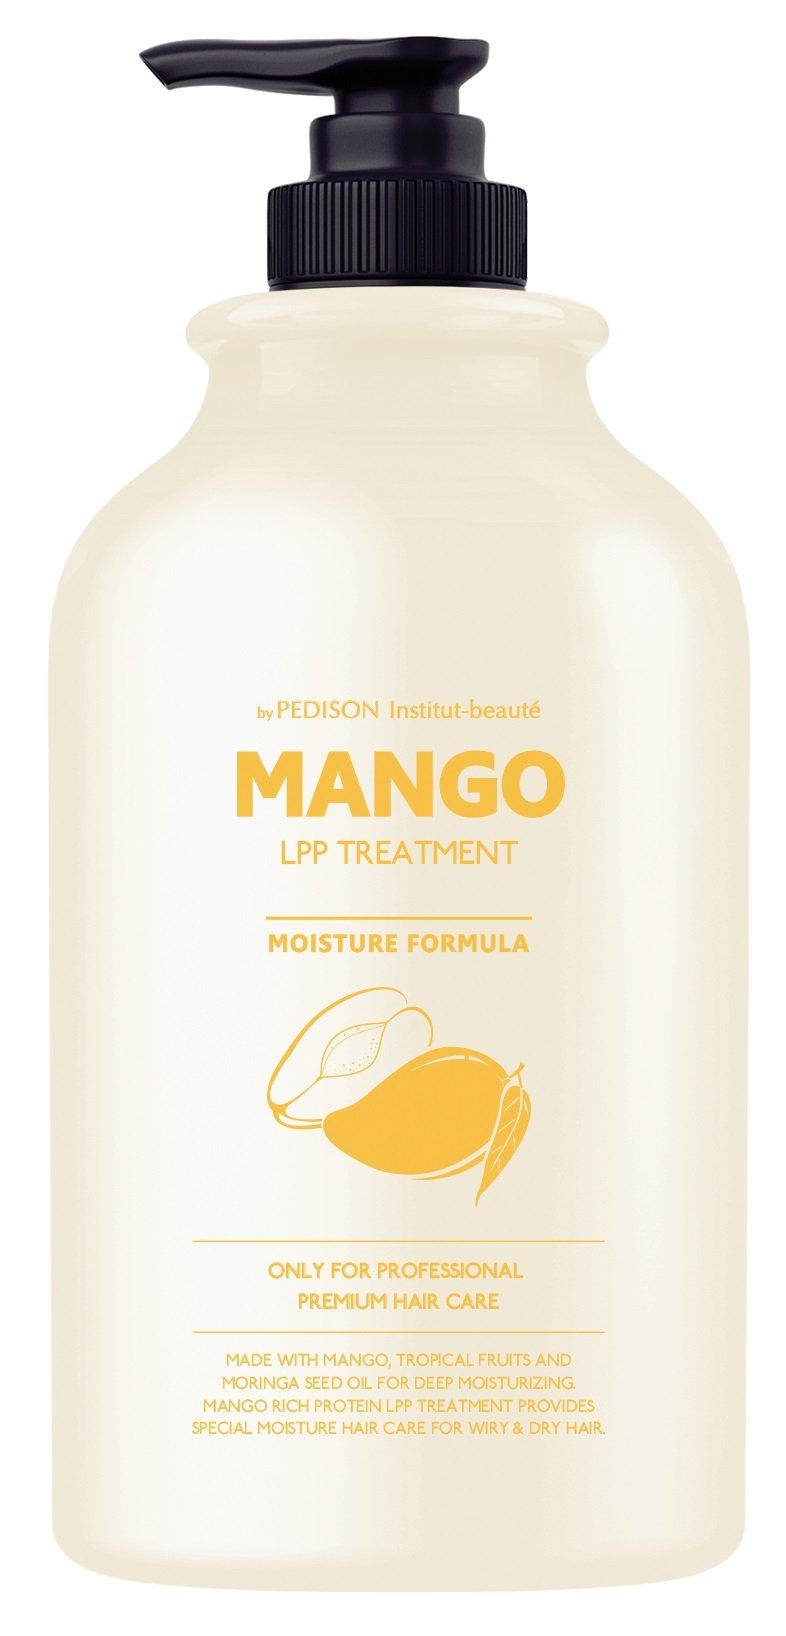 Маски Маска для волос с Маслом манго, PEDISON, Institut-Beaute Mango Rich LPP Treatment, 500 мл 004754.jpg